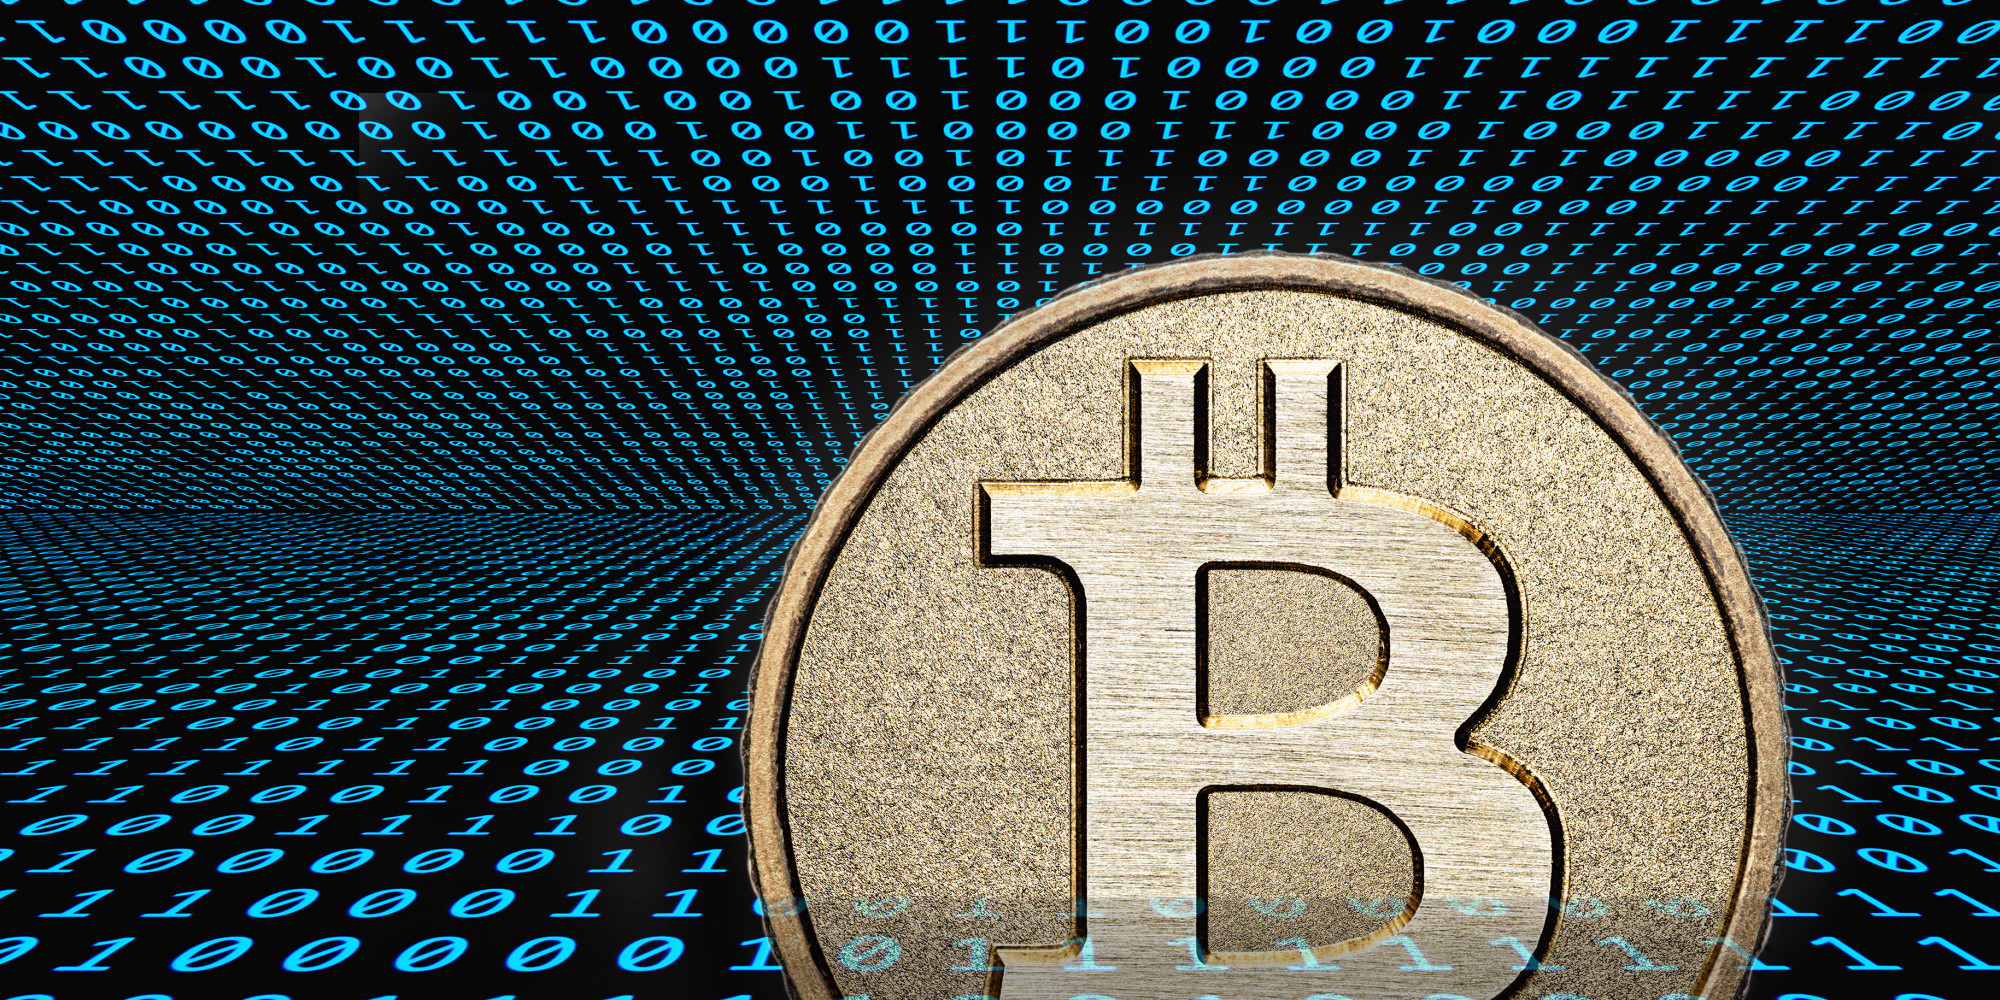 Bitcoin Demystified: Math vs. Government | HuffPost